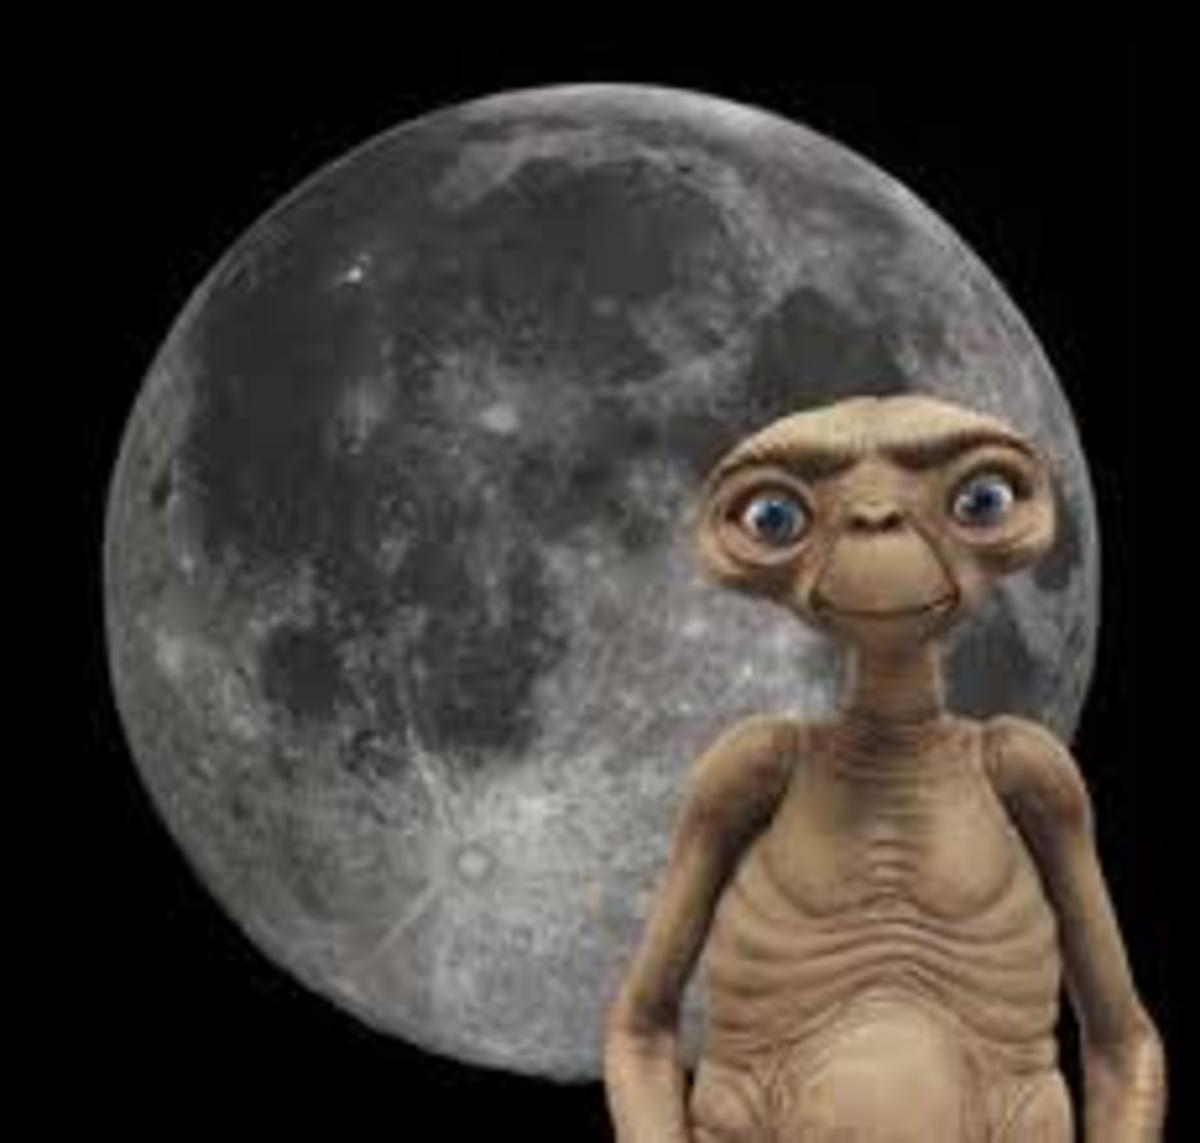 If the moon is home to an alien race than why have they not yet made major contact.